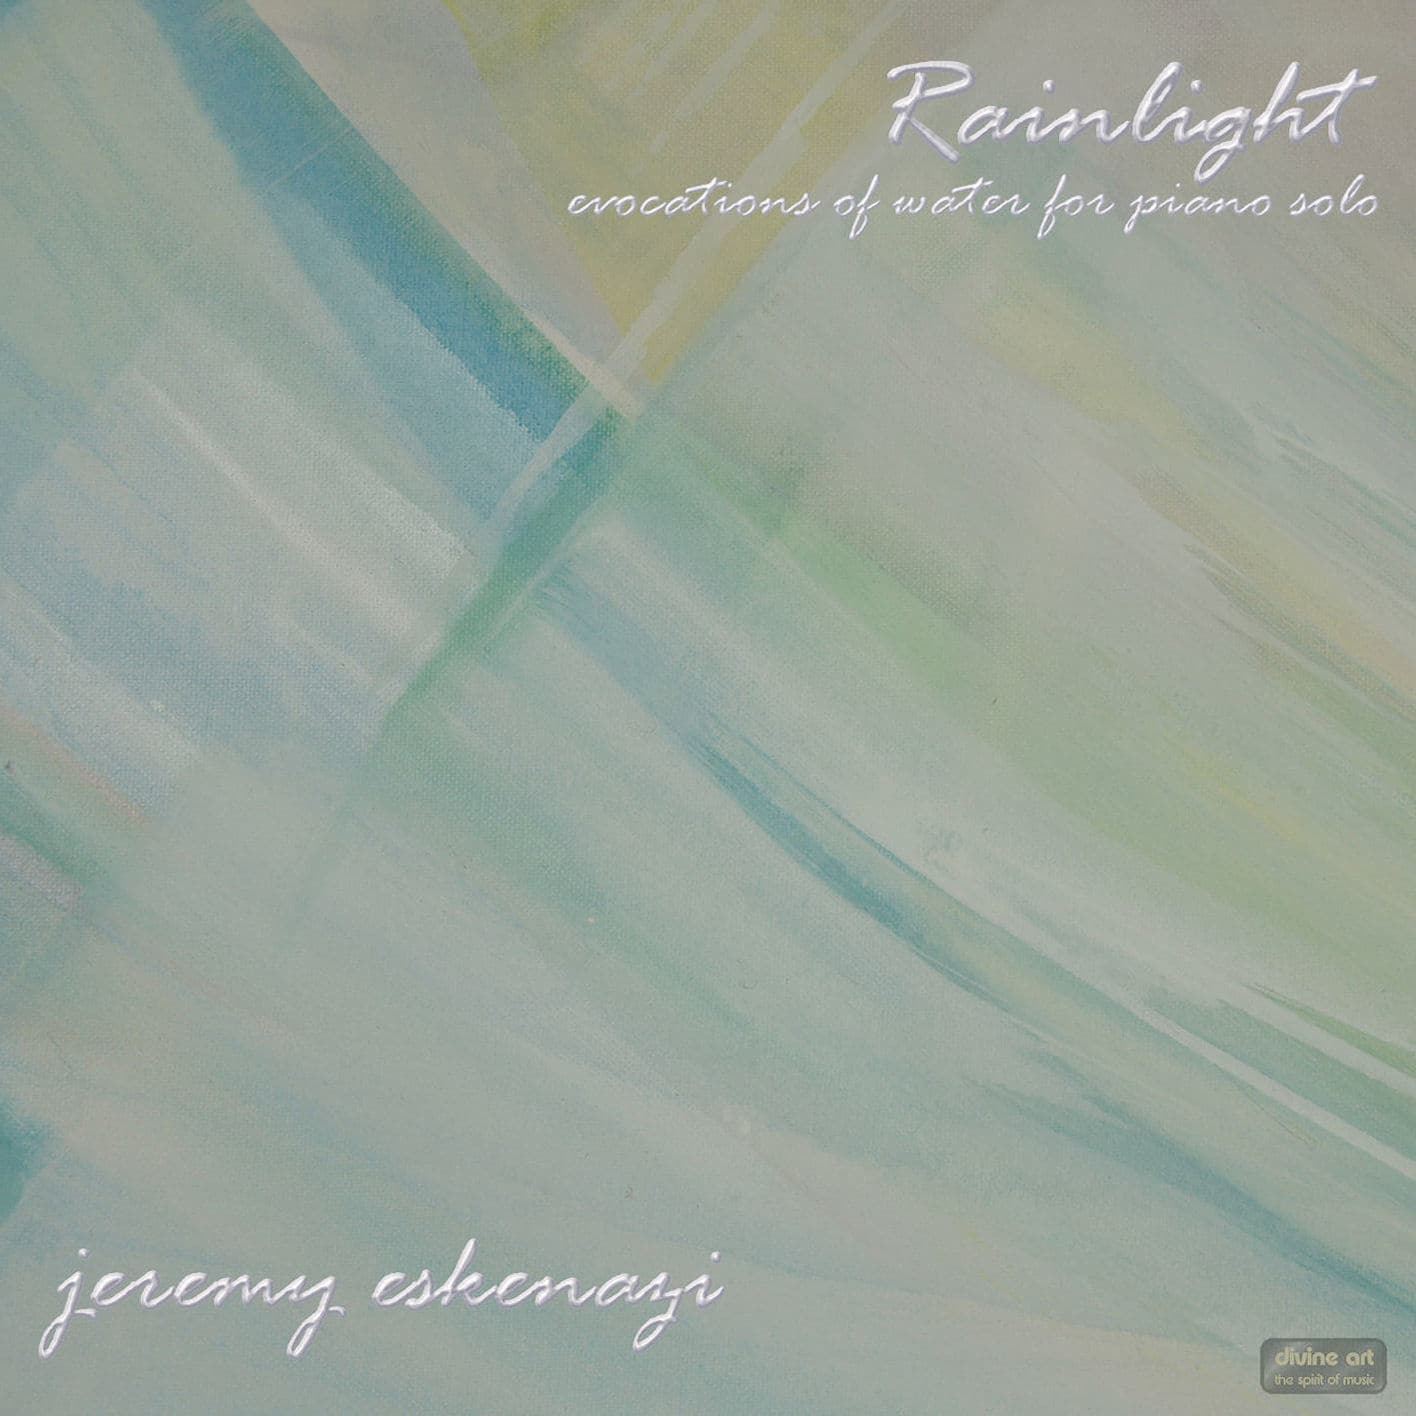 Rainlight - Evocations of Water for Piano Solo